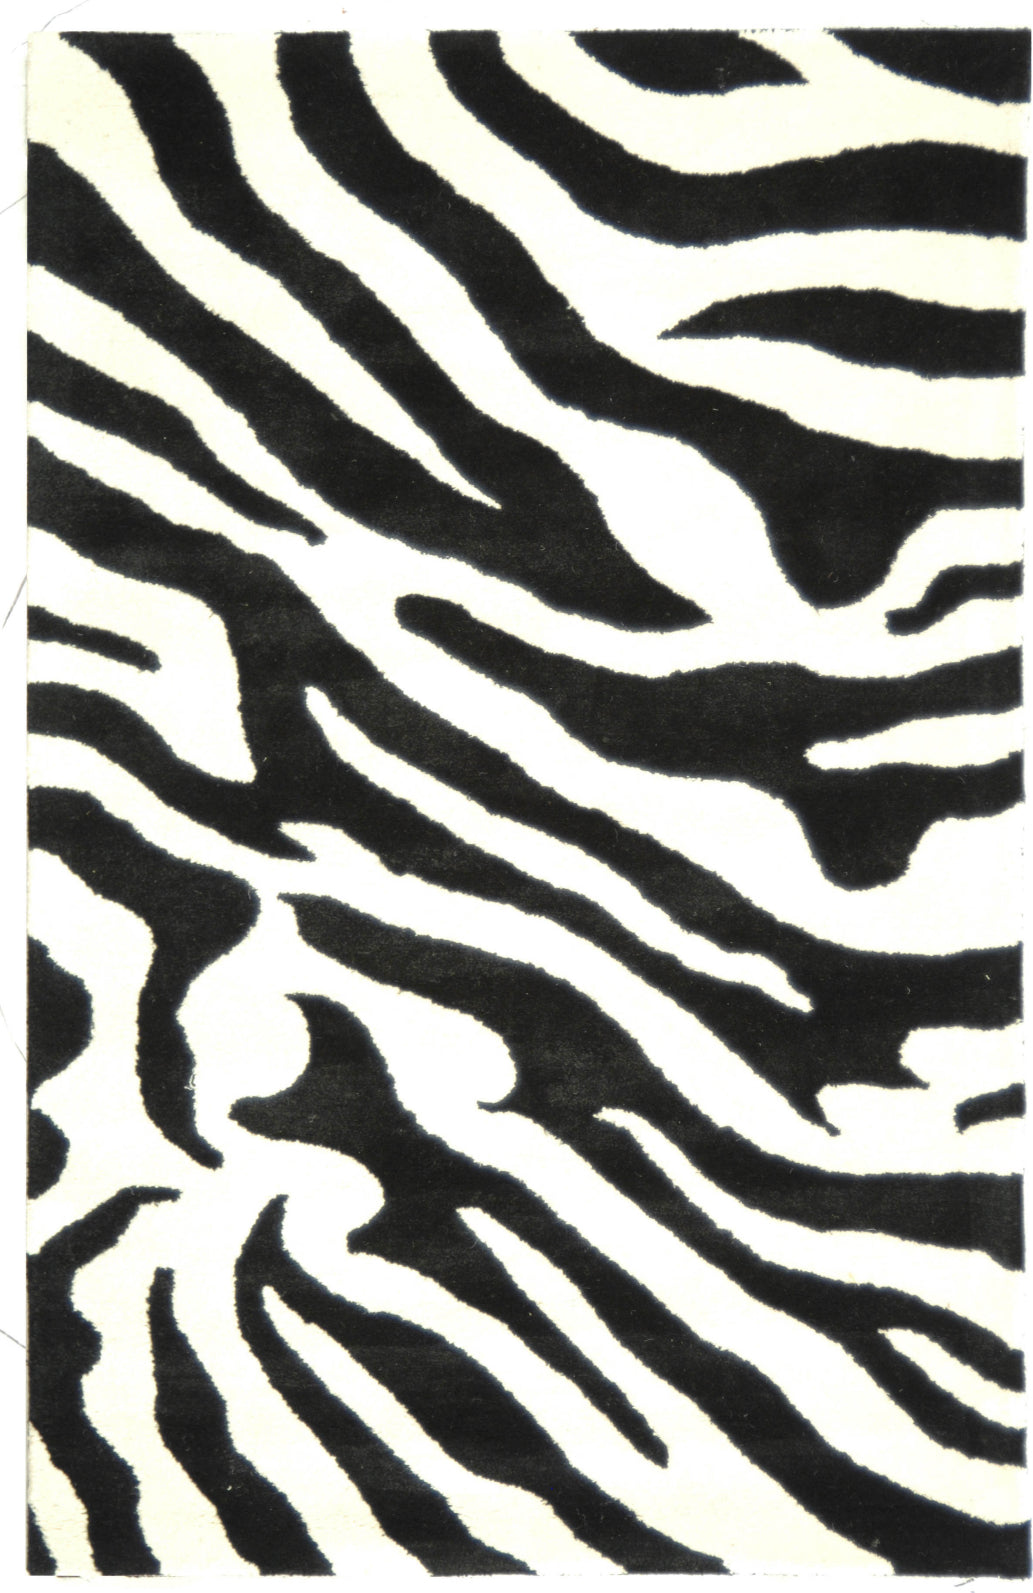 Safavieh Soho Soh717 White/Black Area Rug main image